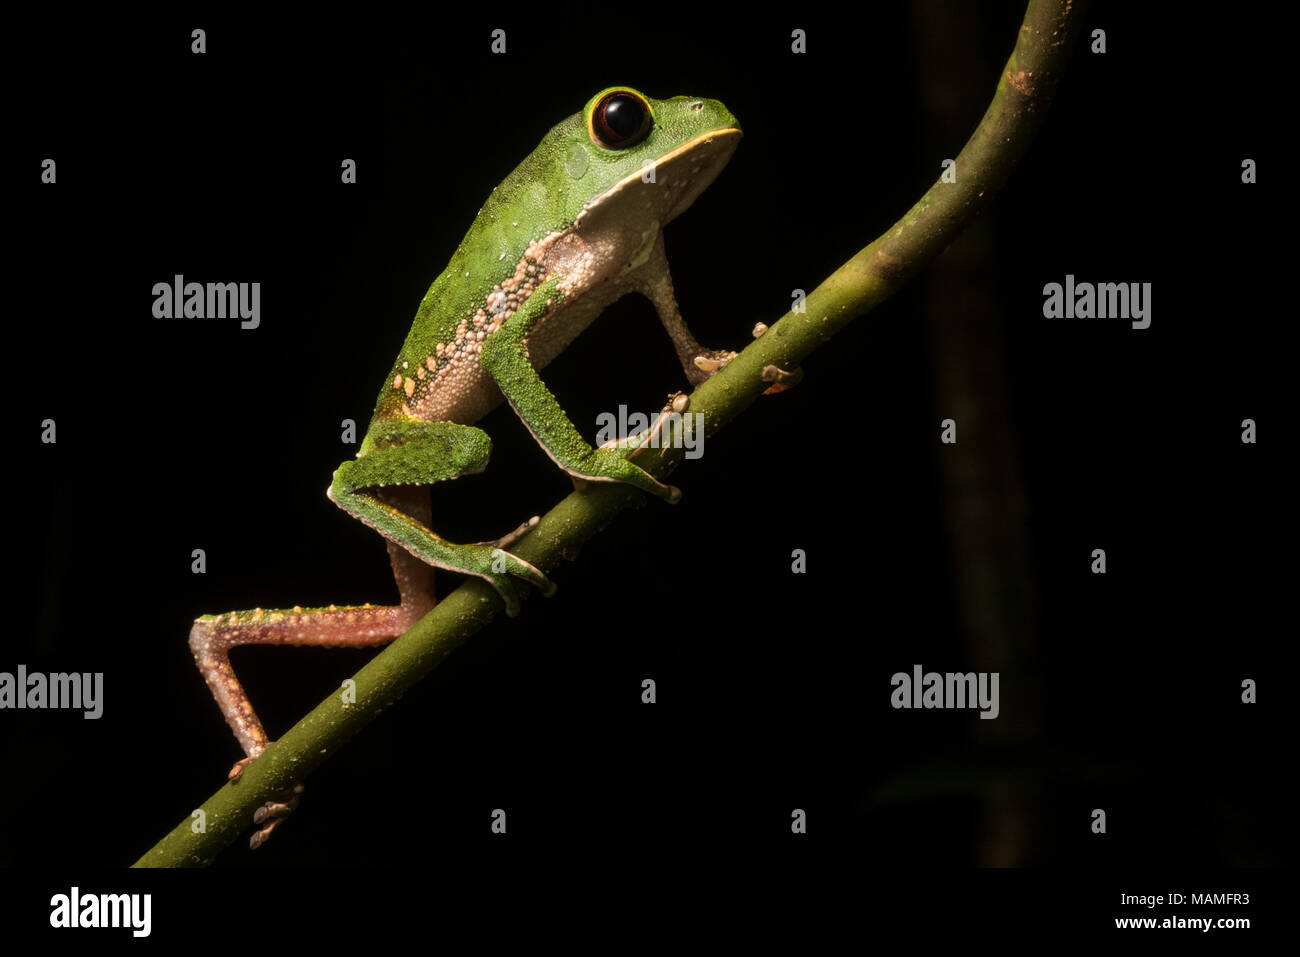 Phyllomedusa camba or potentially P. chaparroi a closely related cryptic species. These frogs walk like monkeys which is how they get their name. - Stock Image